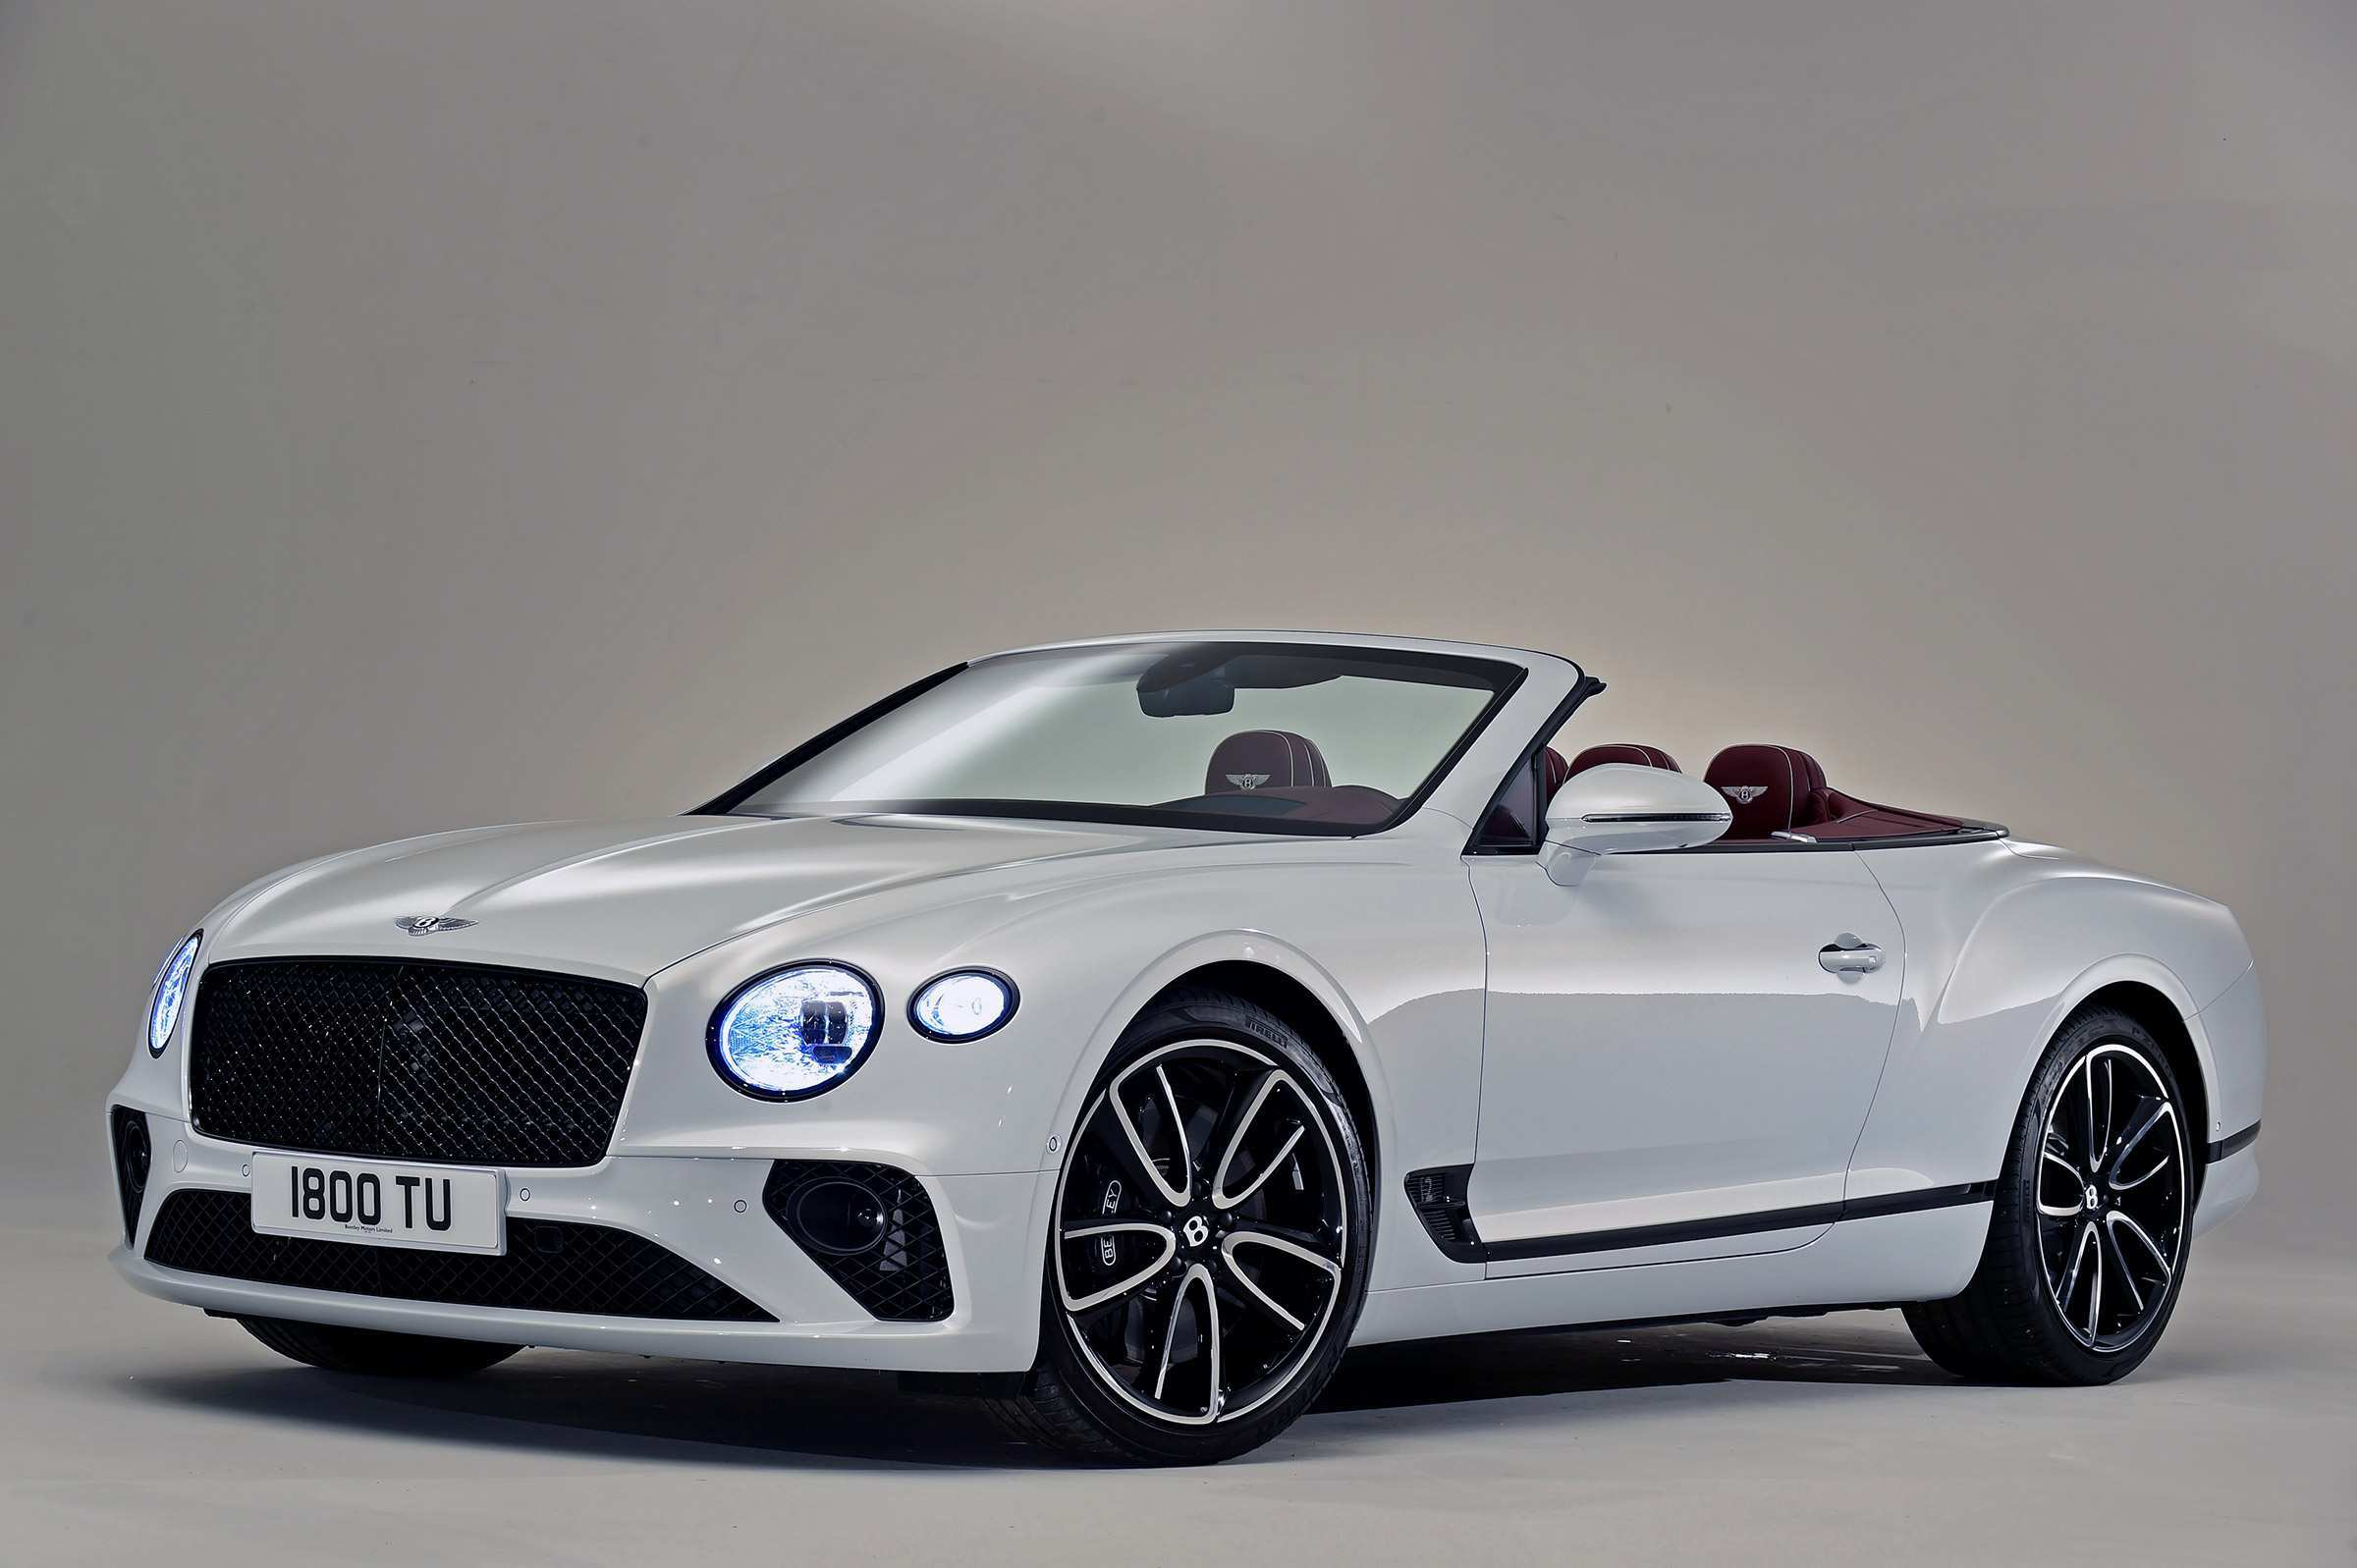 94 Best Review 2019 Bentley Continental Gtc Concept with 2019 Bentley Continental Gtc